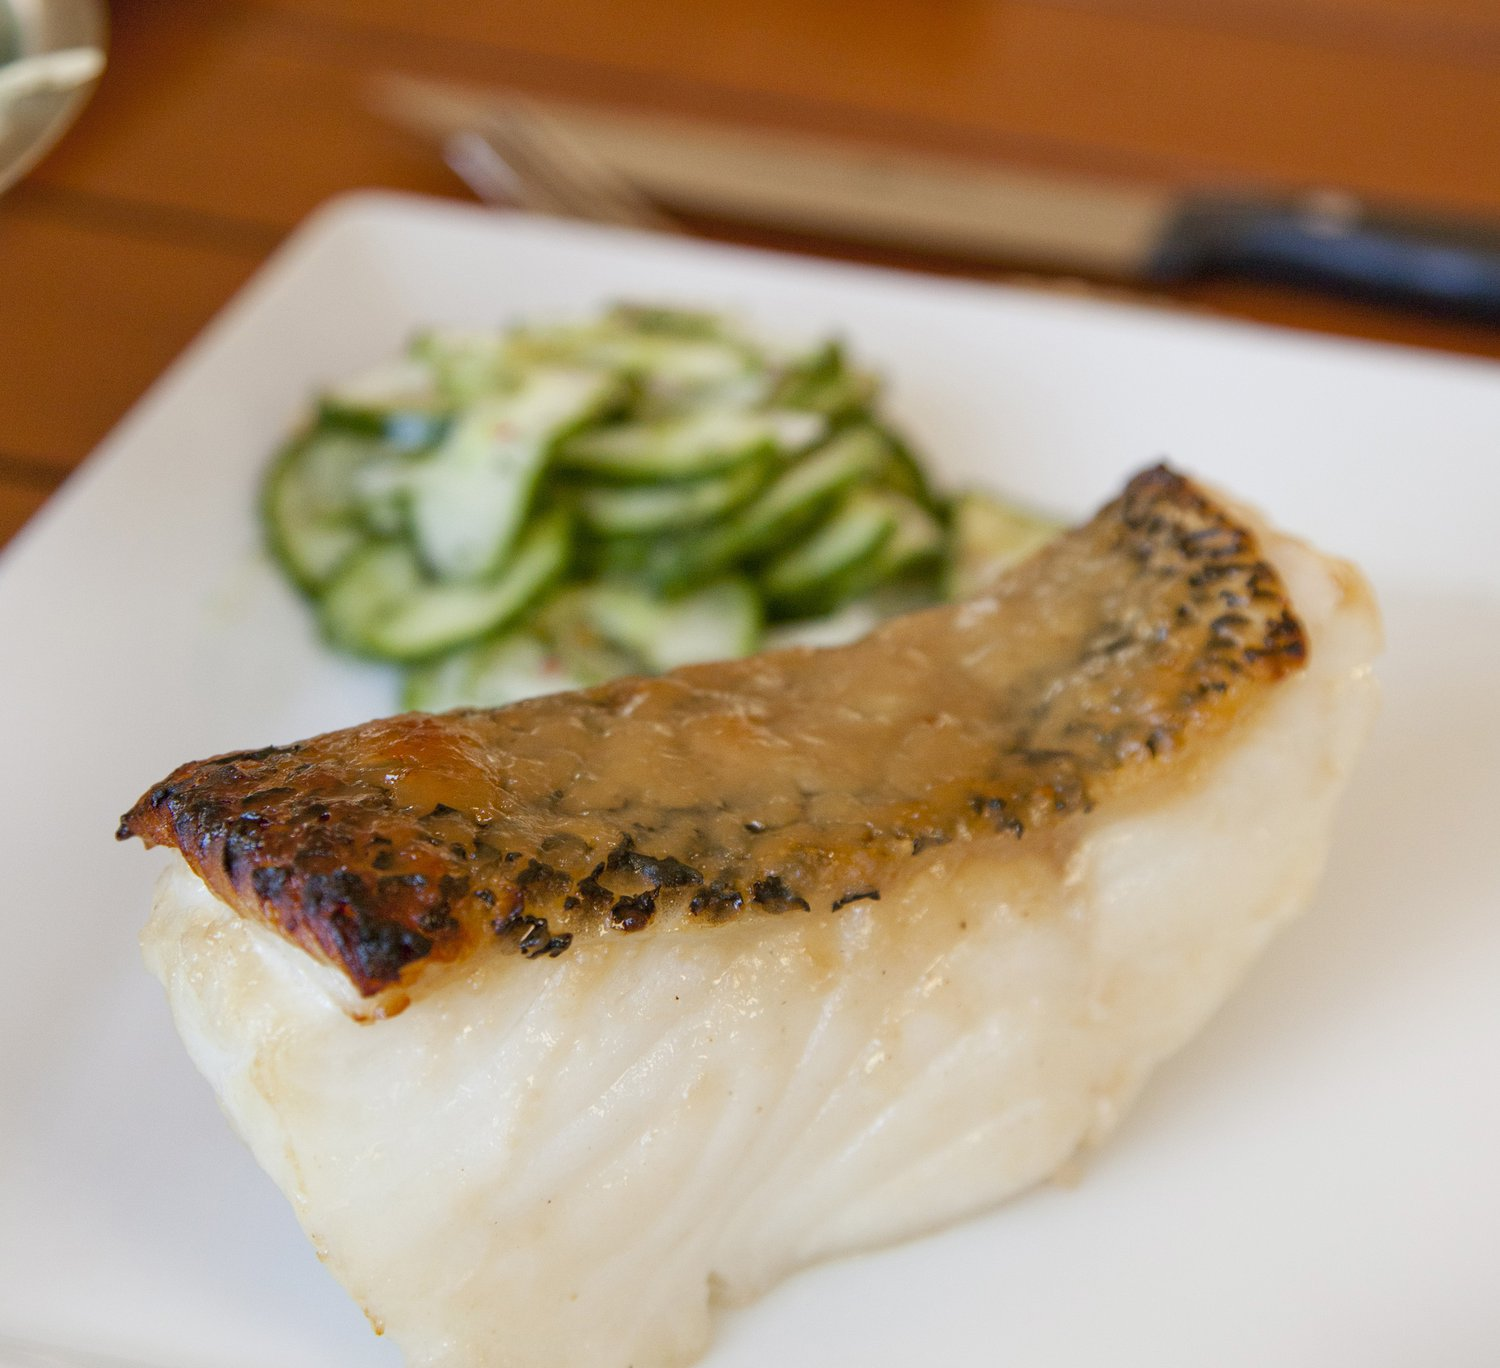 Asian style chilean sea bass